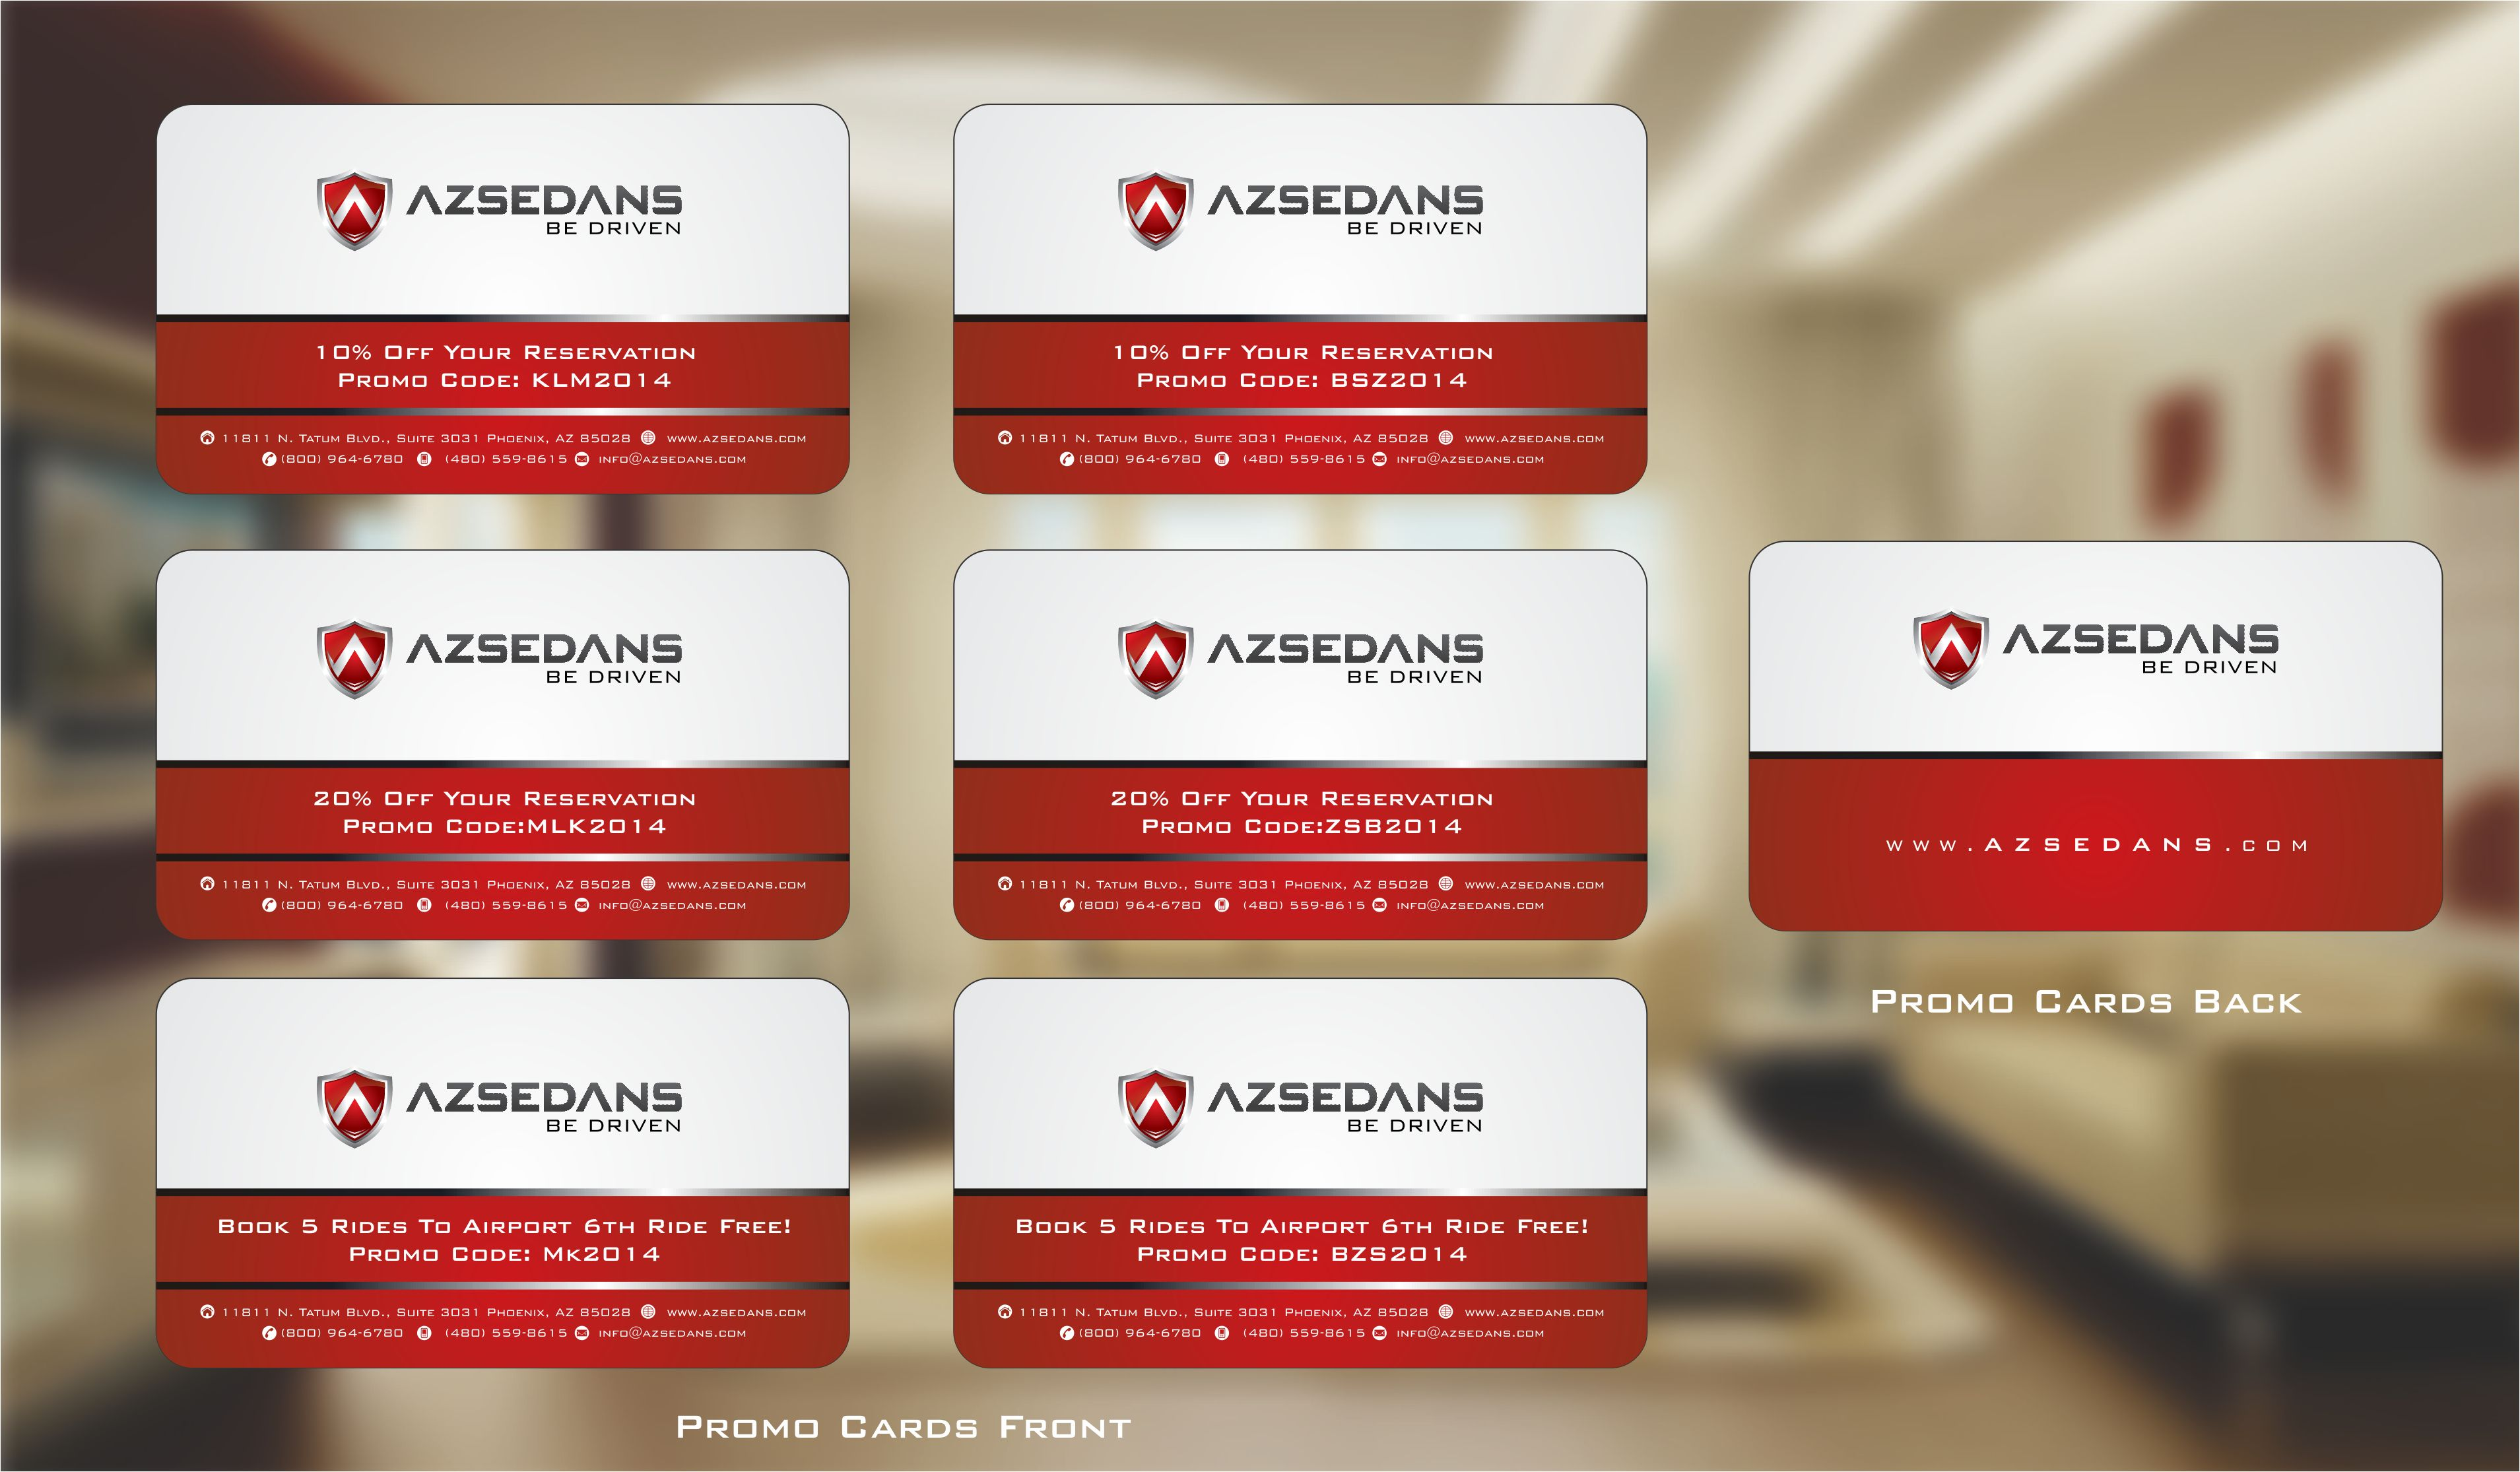 AZ Sedans Bonus Card - Transportation